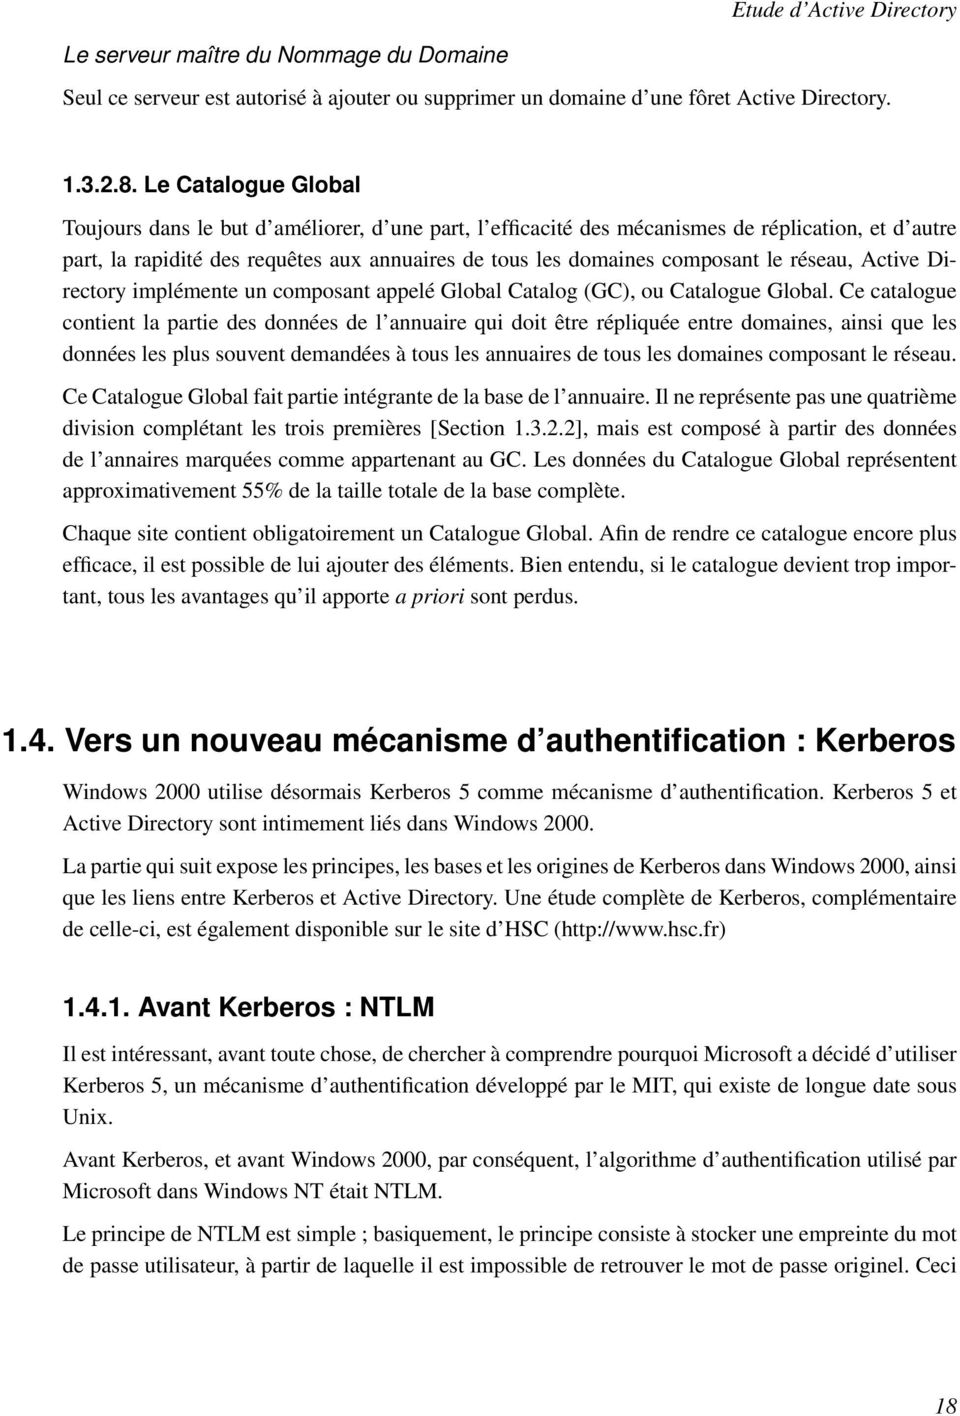 réseau, Active Directory implémente un composant appelé Global Catalog (GC), ou Catalogue Global.